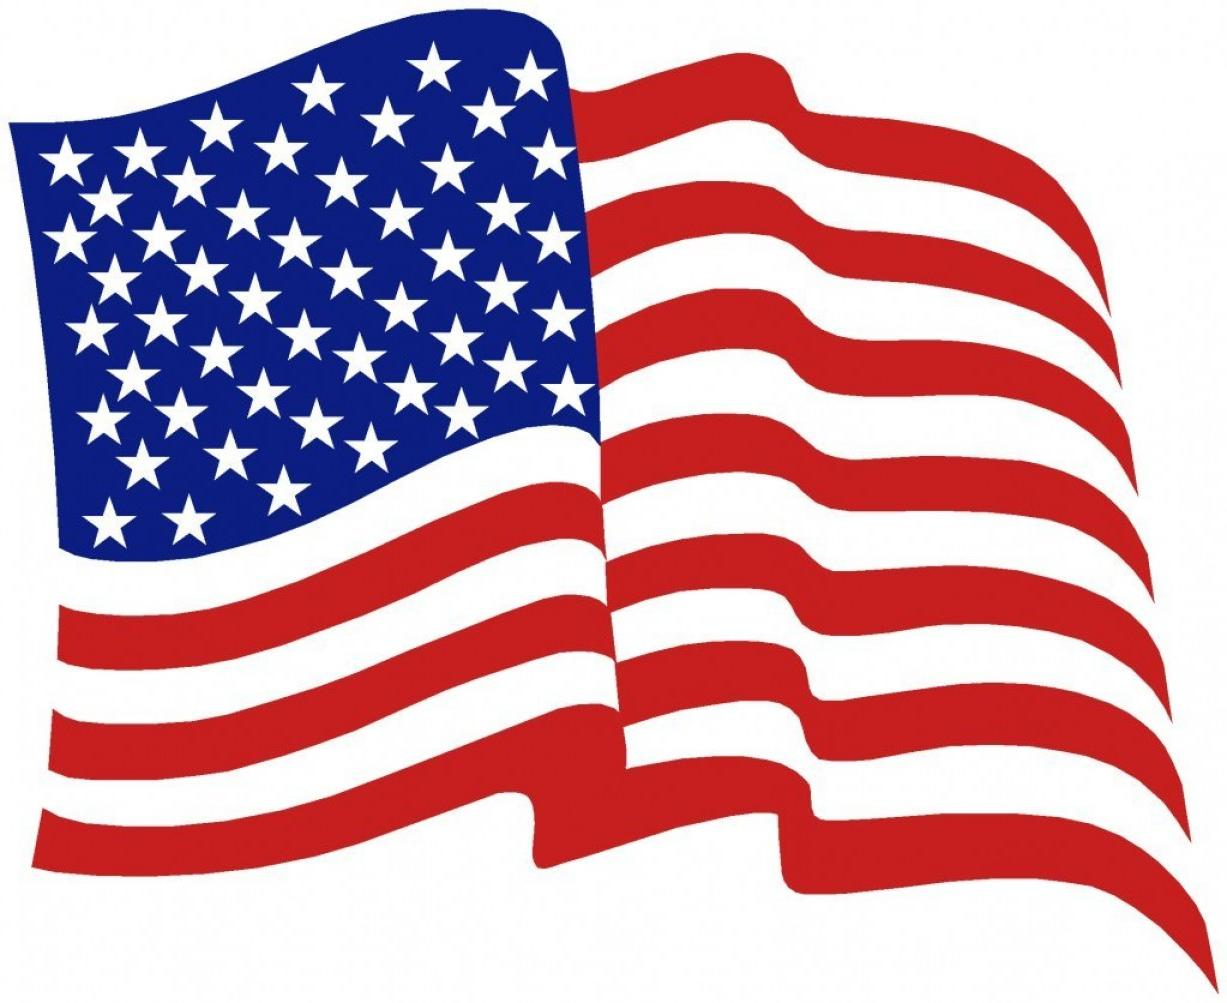 American Flag Clipart at GetDrawings.com.